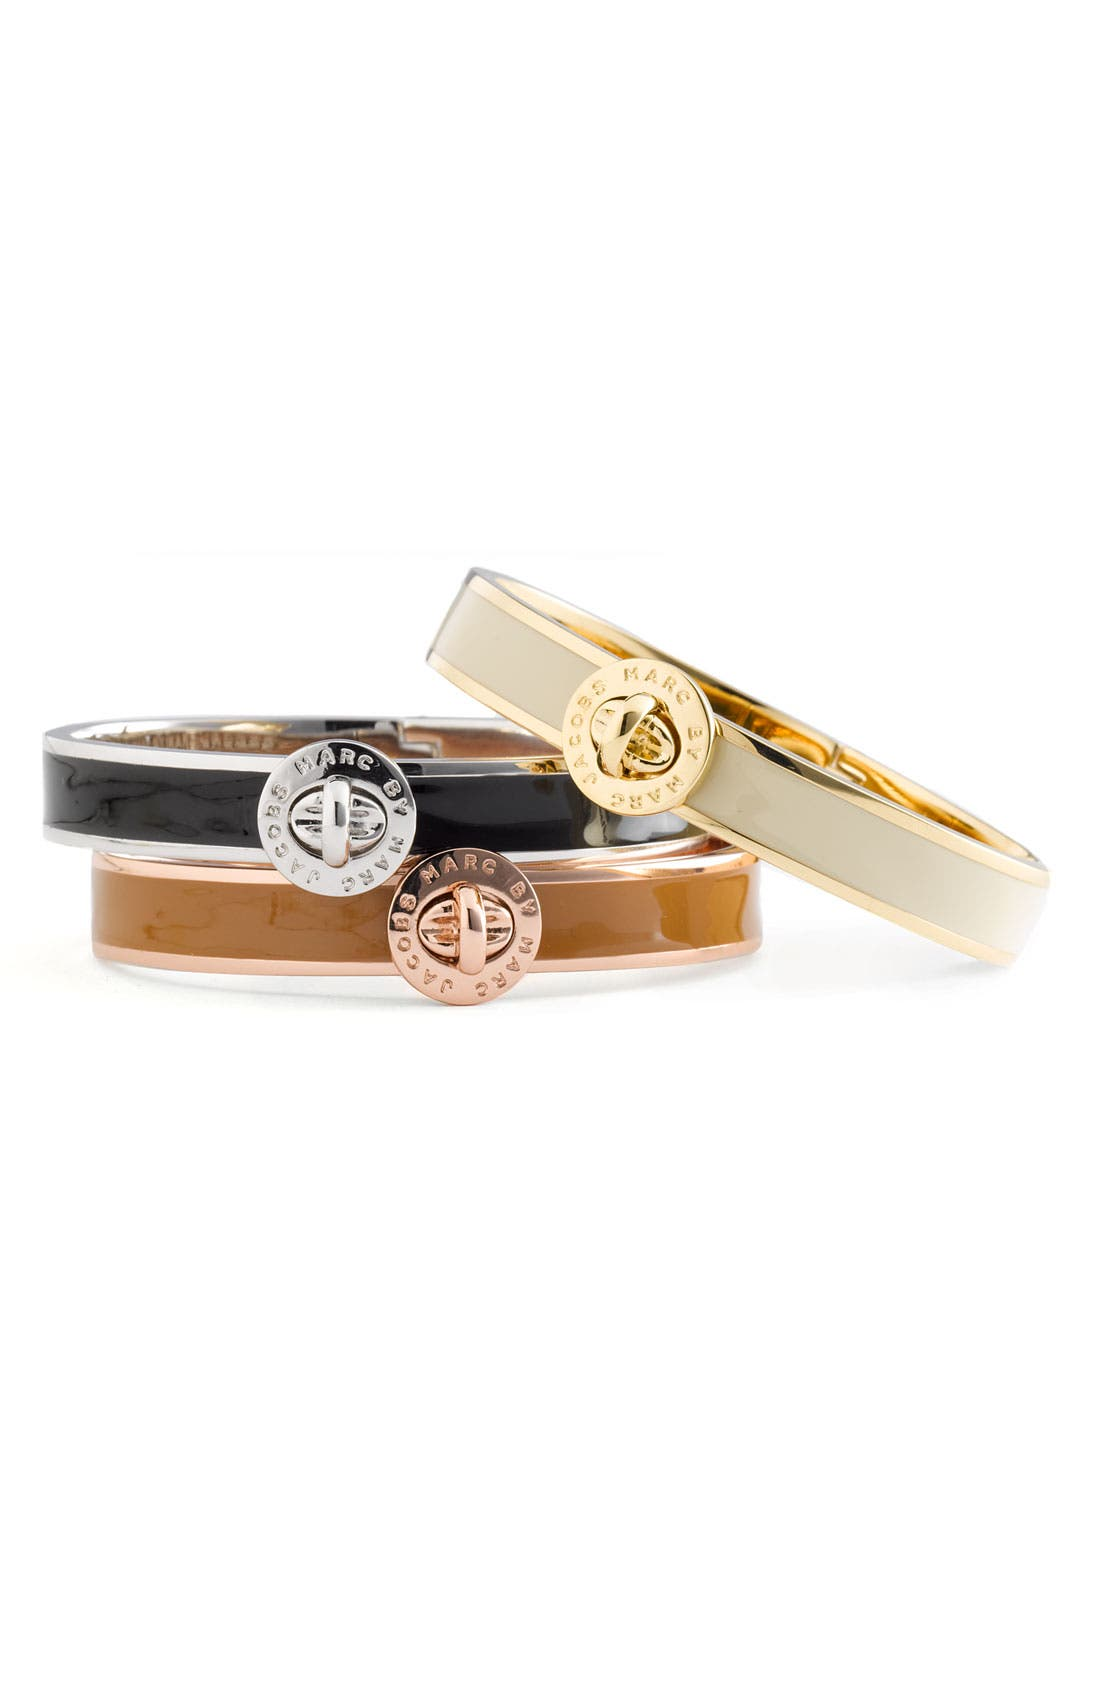 Alternate Image 1 Selected - MARC BY MARC JACOBS 'Turnlock' Hinged Bangle